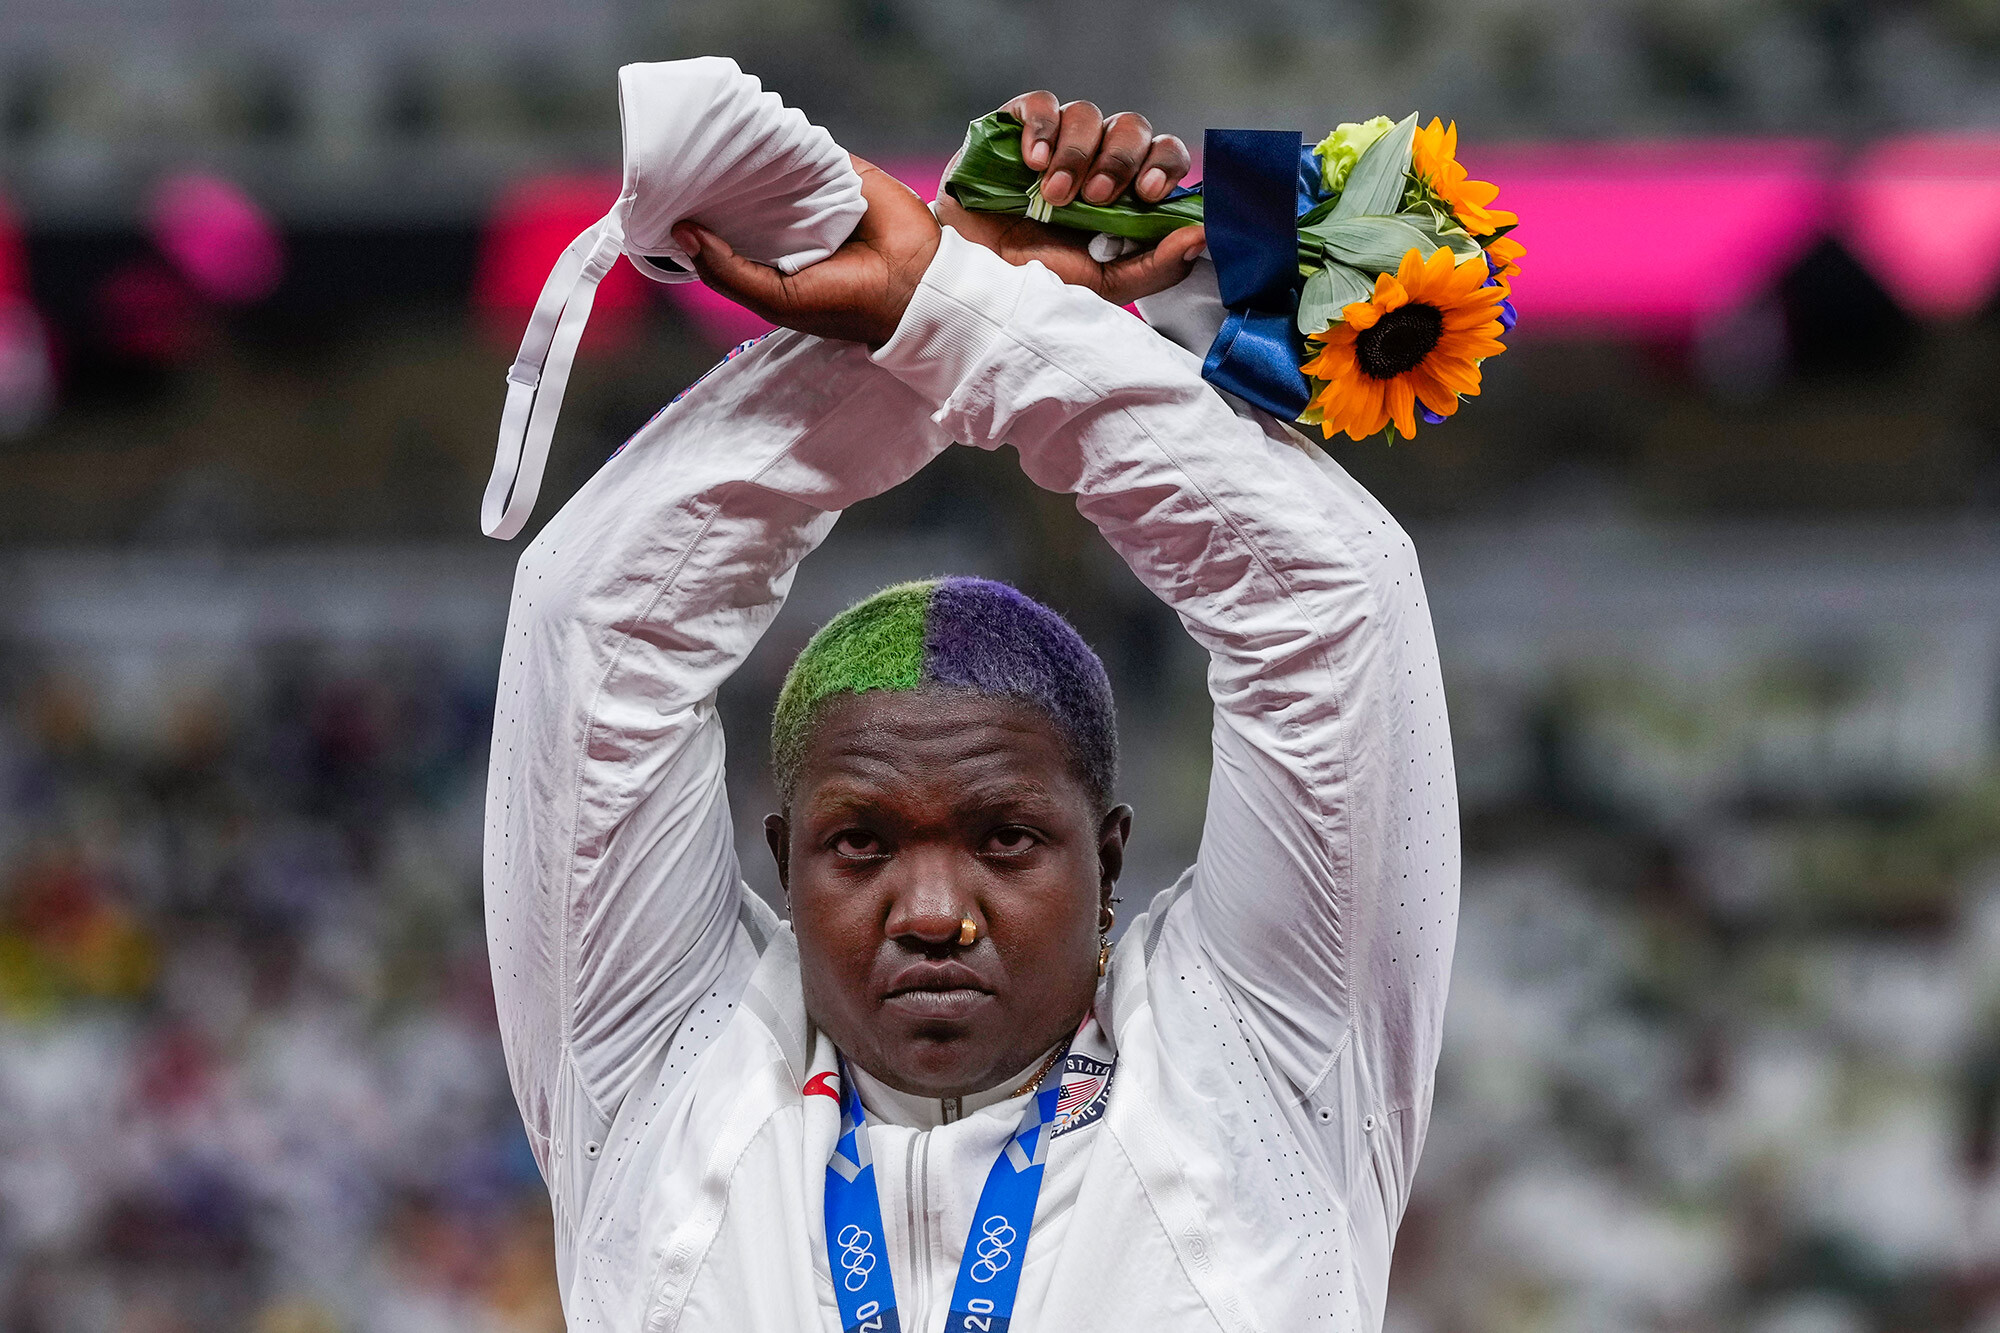 International Olympic Committee suspends its action on Raven Saunders' podium protest after her mother's death